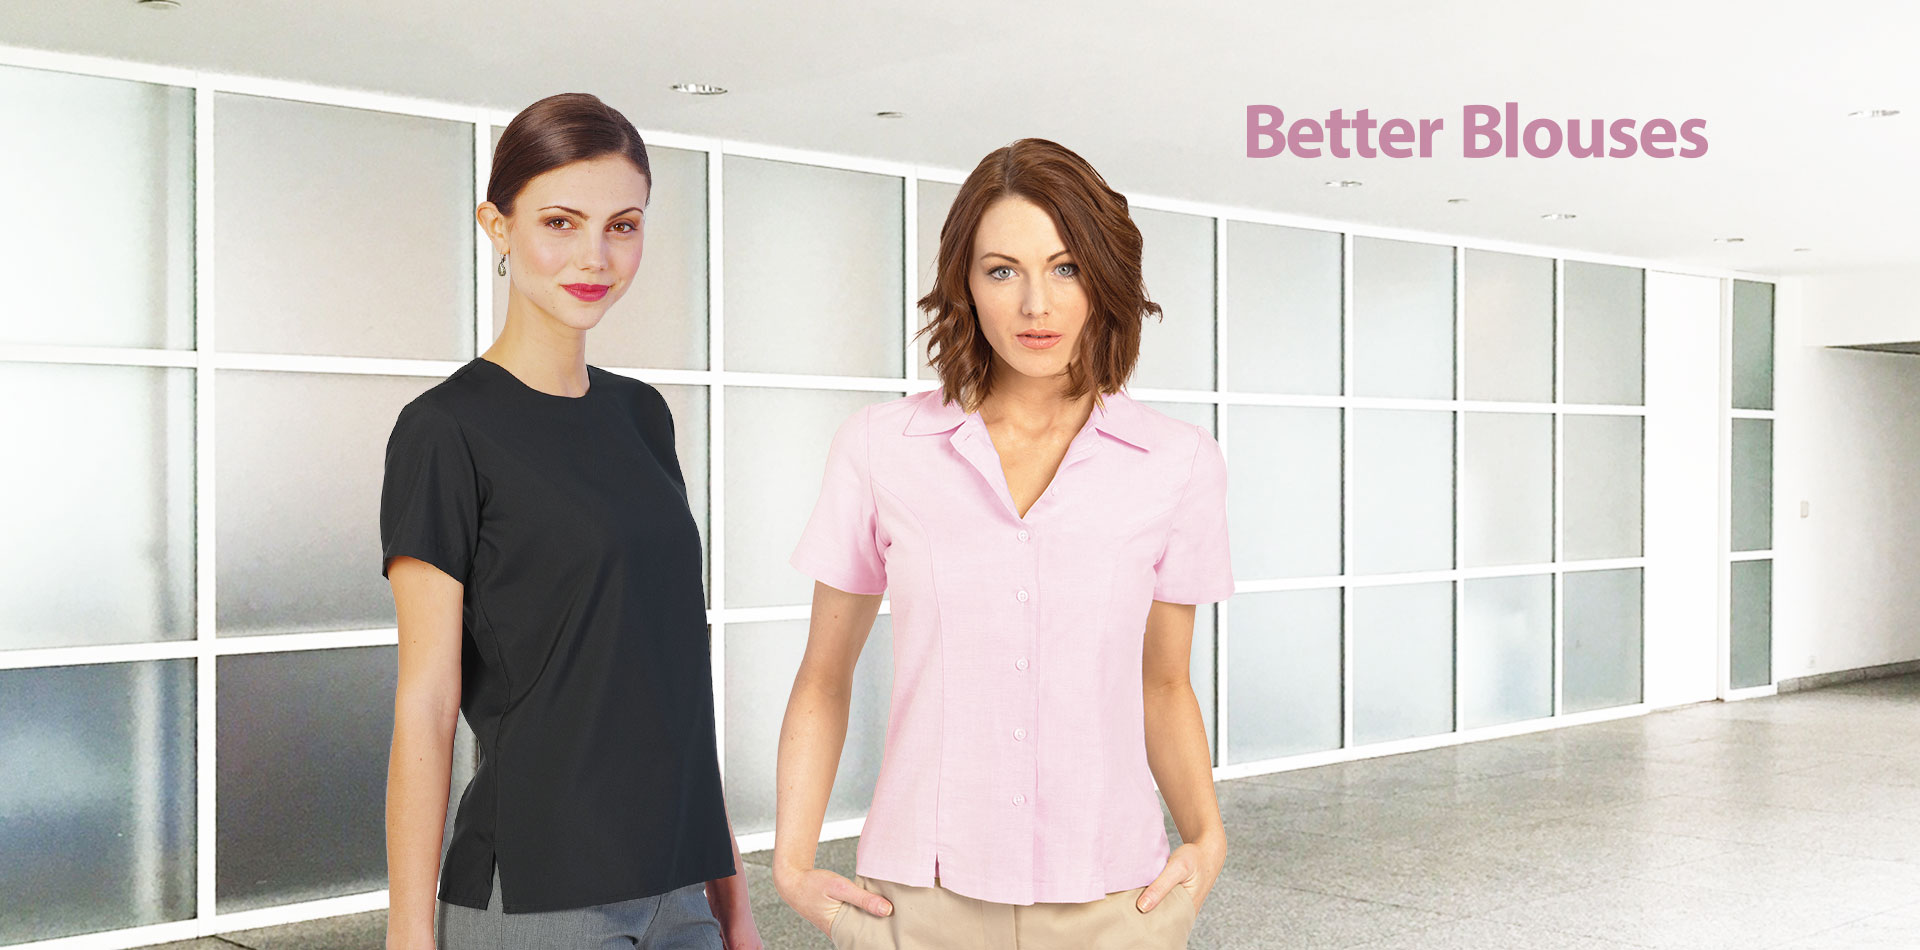 Executive Apparel Better Blouses for Uniforms